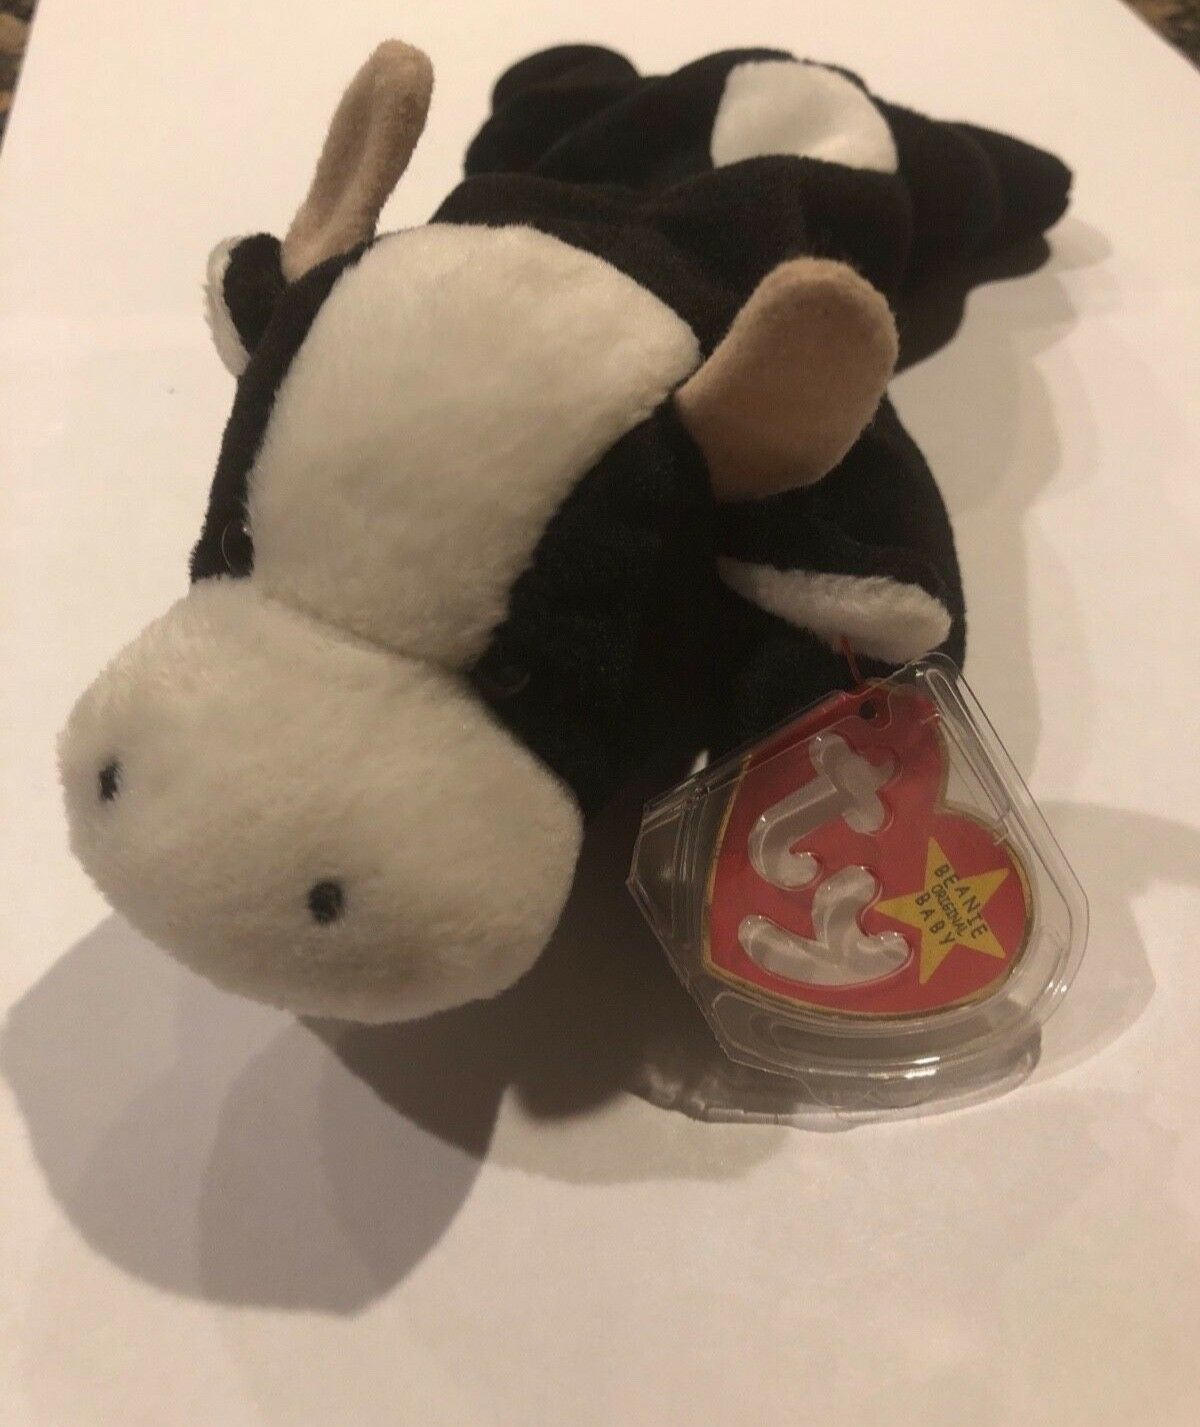 e0ef2db2e7a RARE TY Daisy The Cow Beanie Original Baby 1993 1994 Retired Collectible